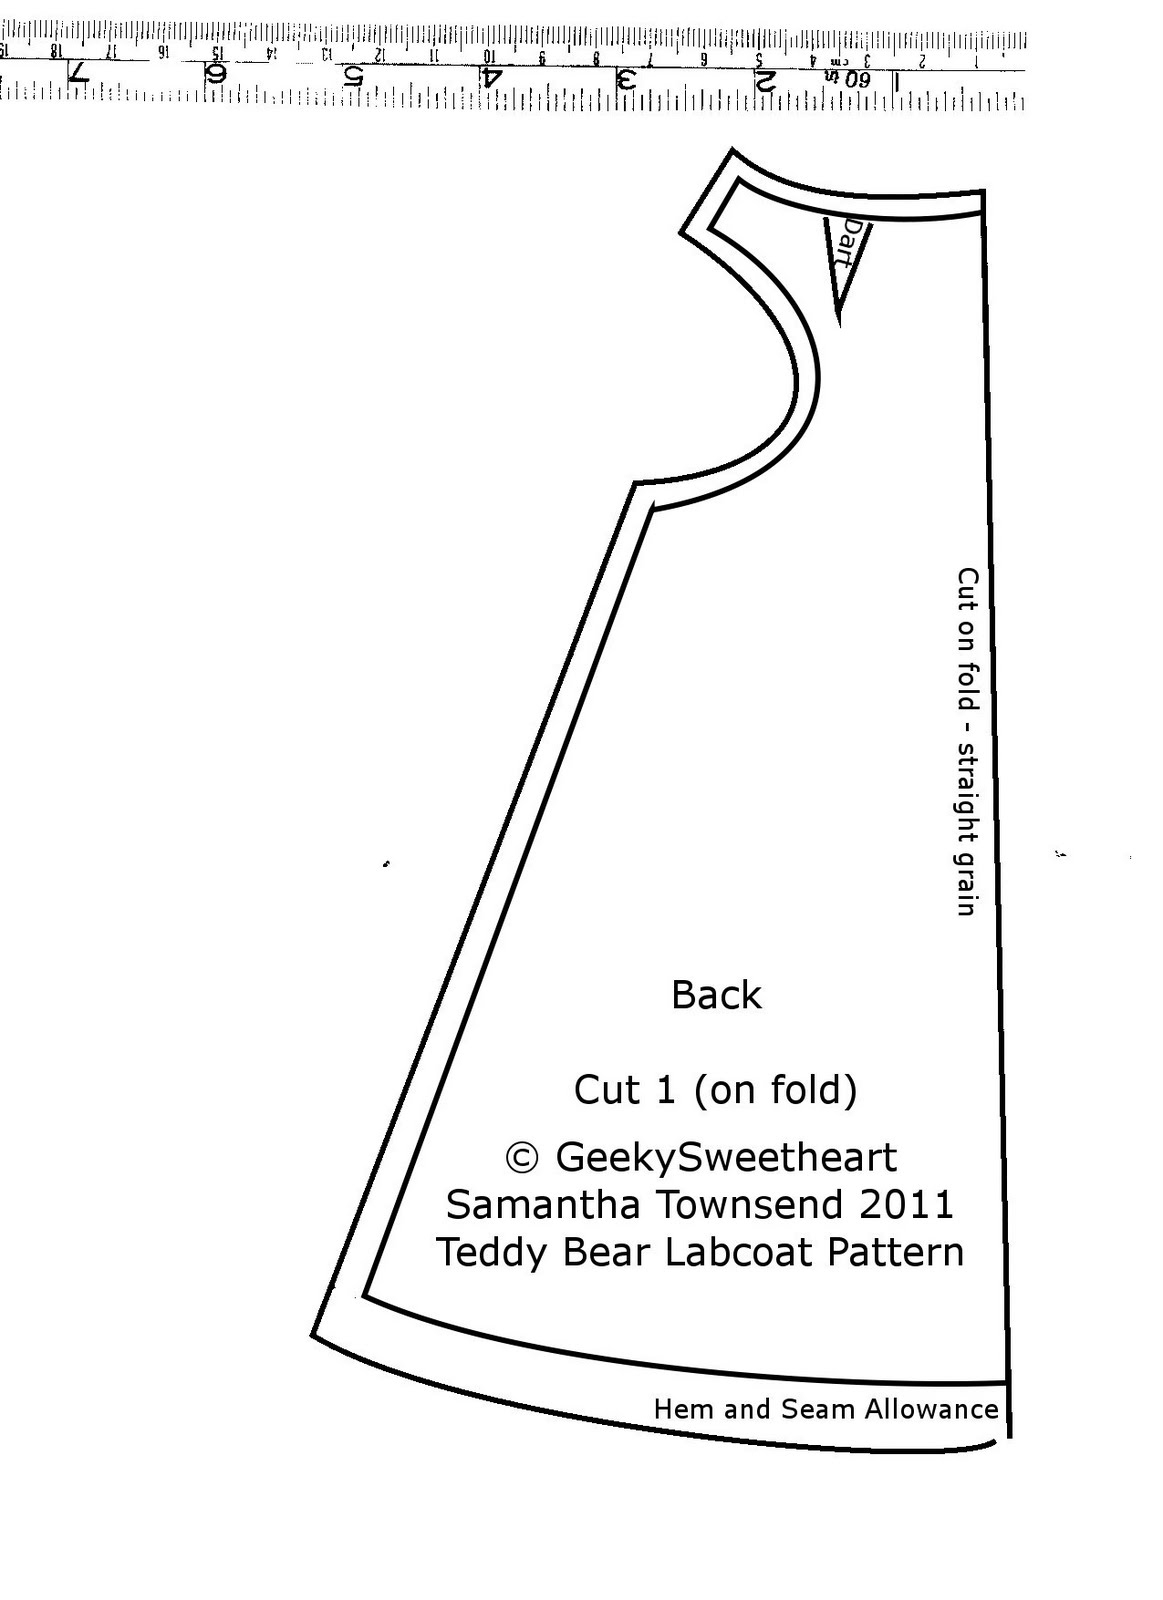 Geekysweetheart: Teddy Bear Labcoat (With Tutorial) !! - Free Printable Teddy Bear Clothes Patterns